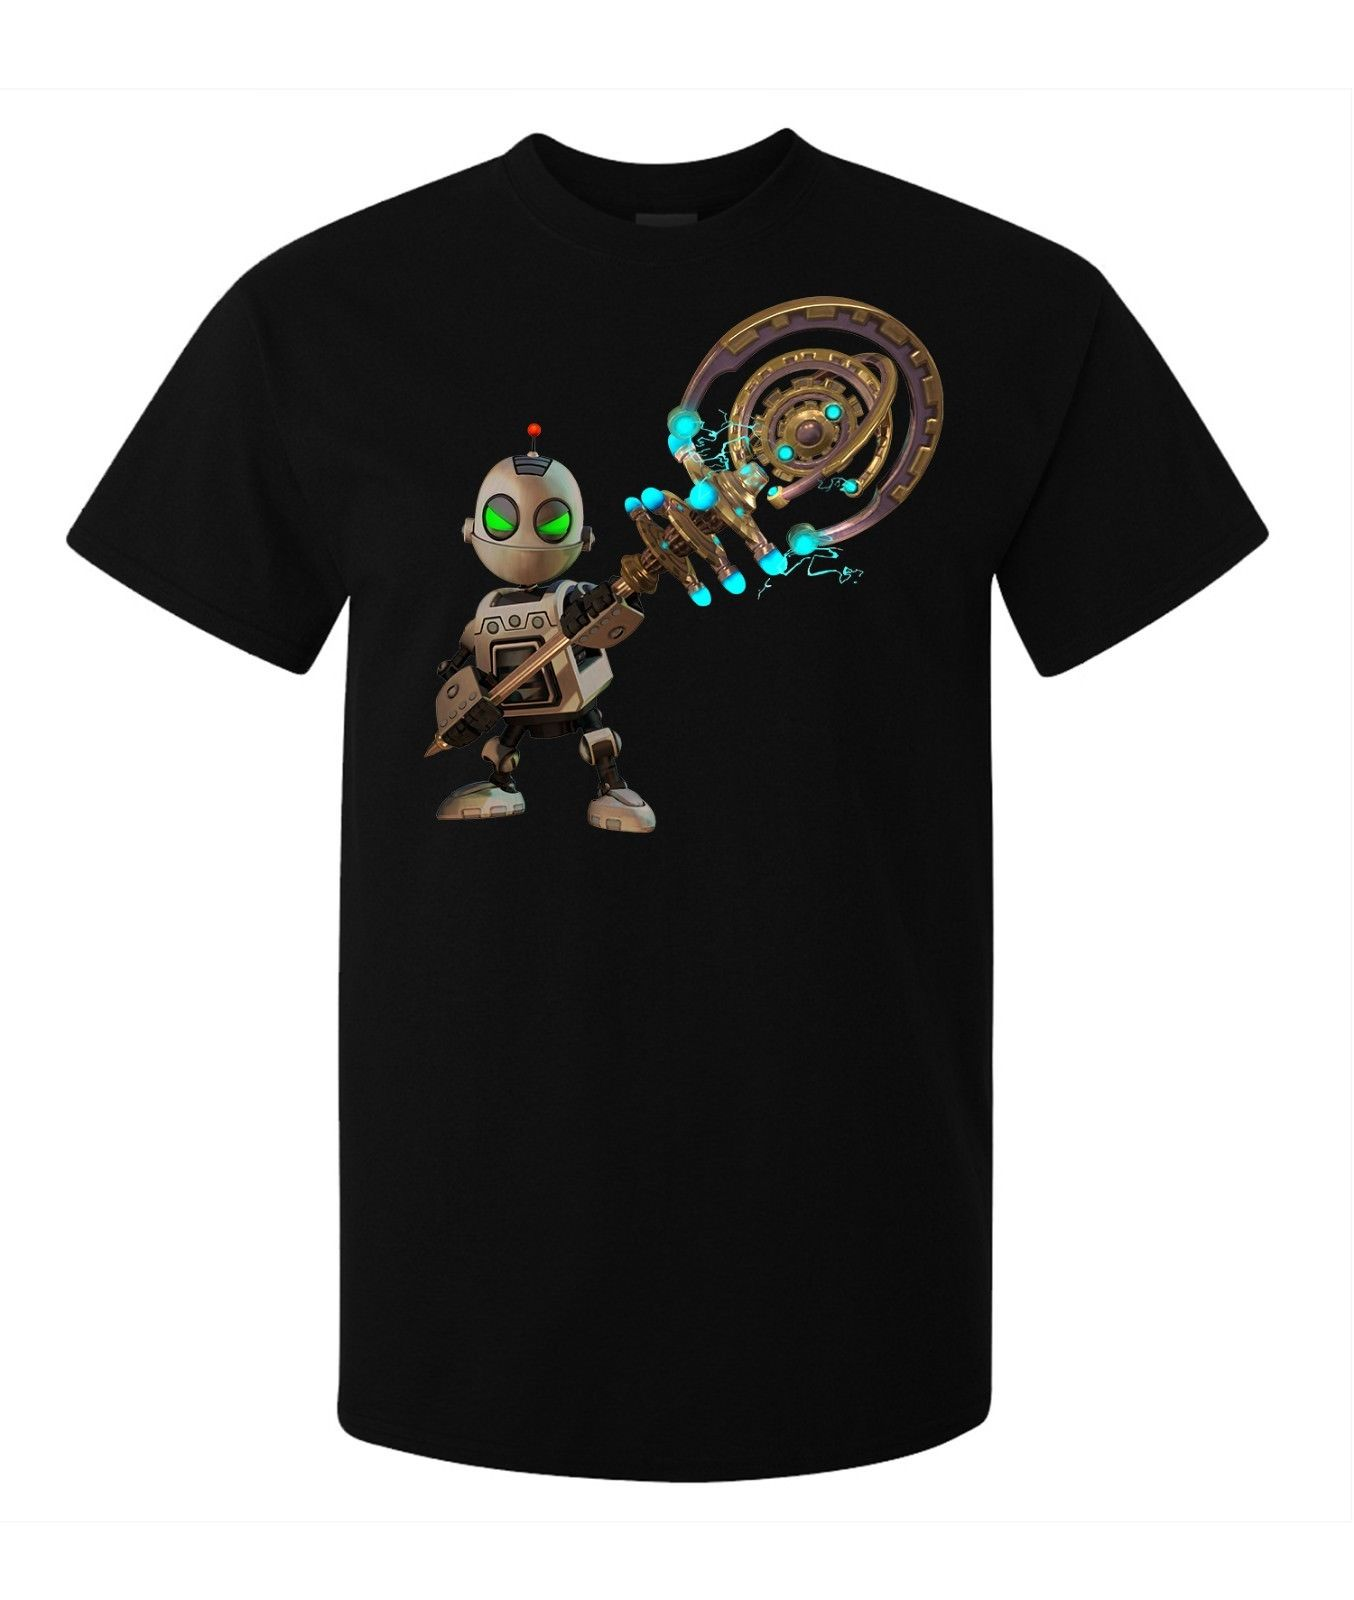 Ratchet And Clank Game Character Clank men's (woman's available) t shirt black Cartoon t shirt men Unisex New Fashion tshirt image